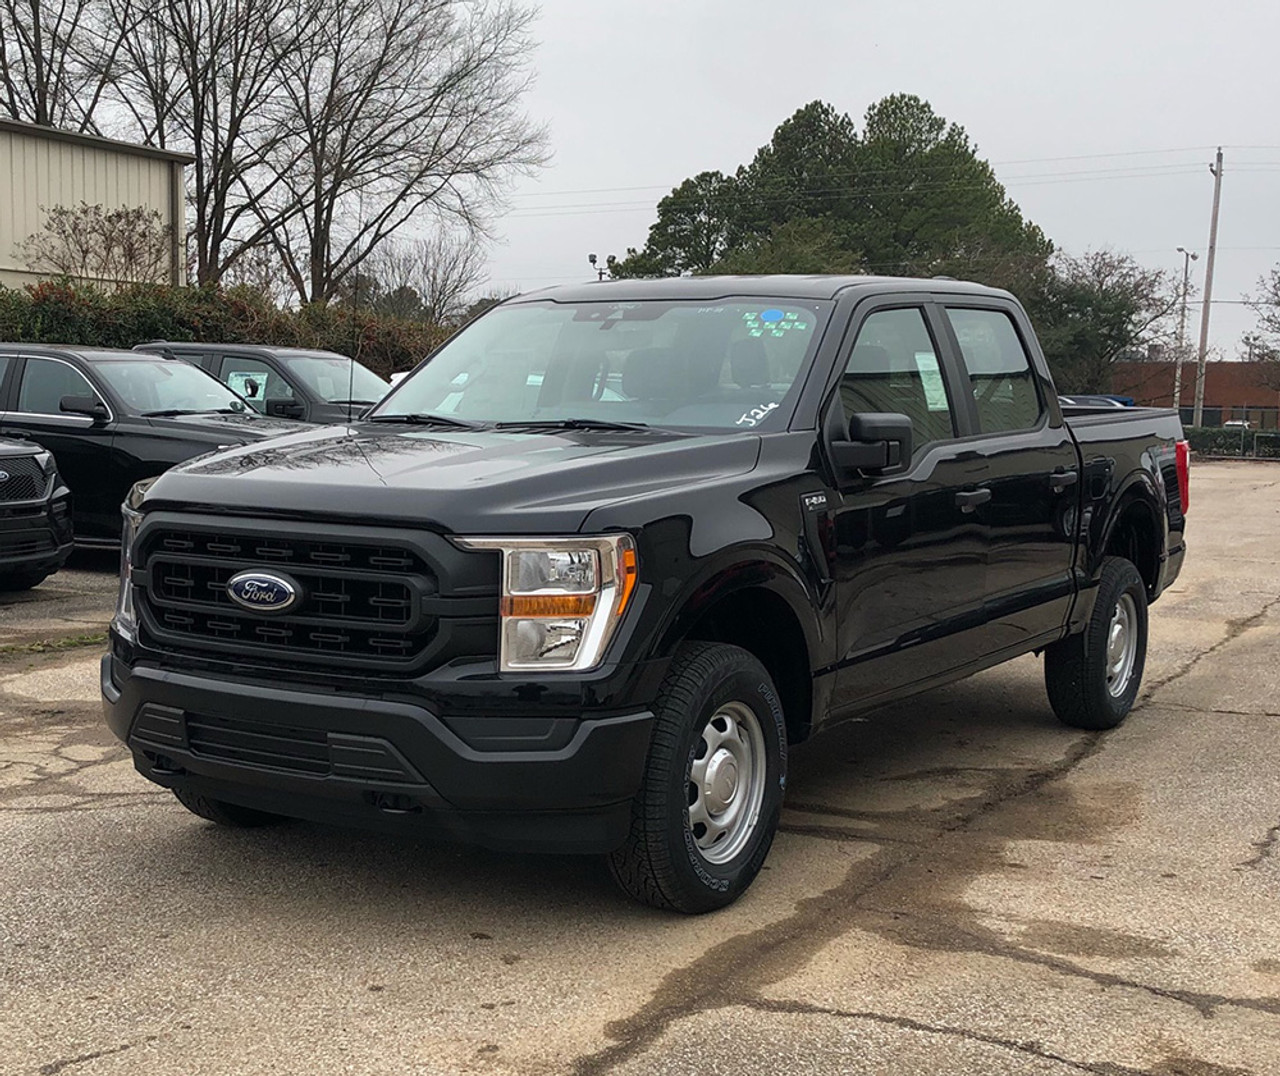 New 2021 Ford F-150 Black 4x4 SSV V6 Special Service Truck, ready to be built as an Admin Package, Slick-Top, choose any color LED Lights, + Delivery